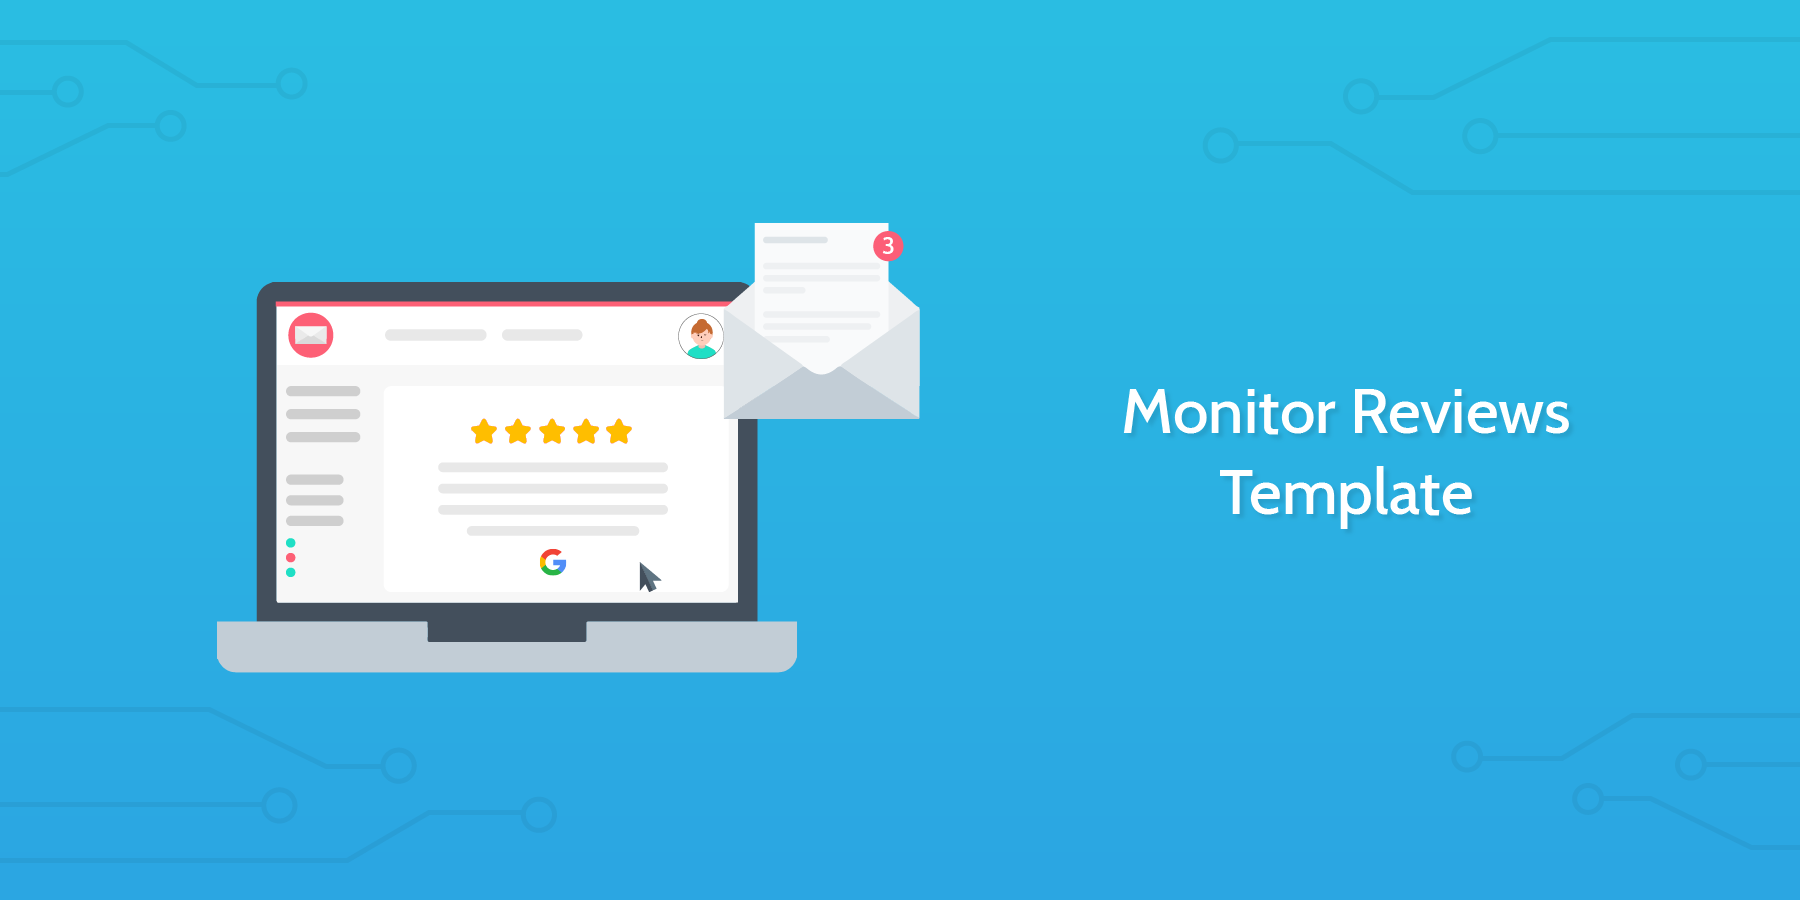 Introduction to the Monitor Reviews Template: